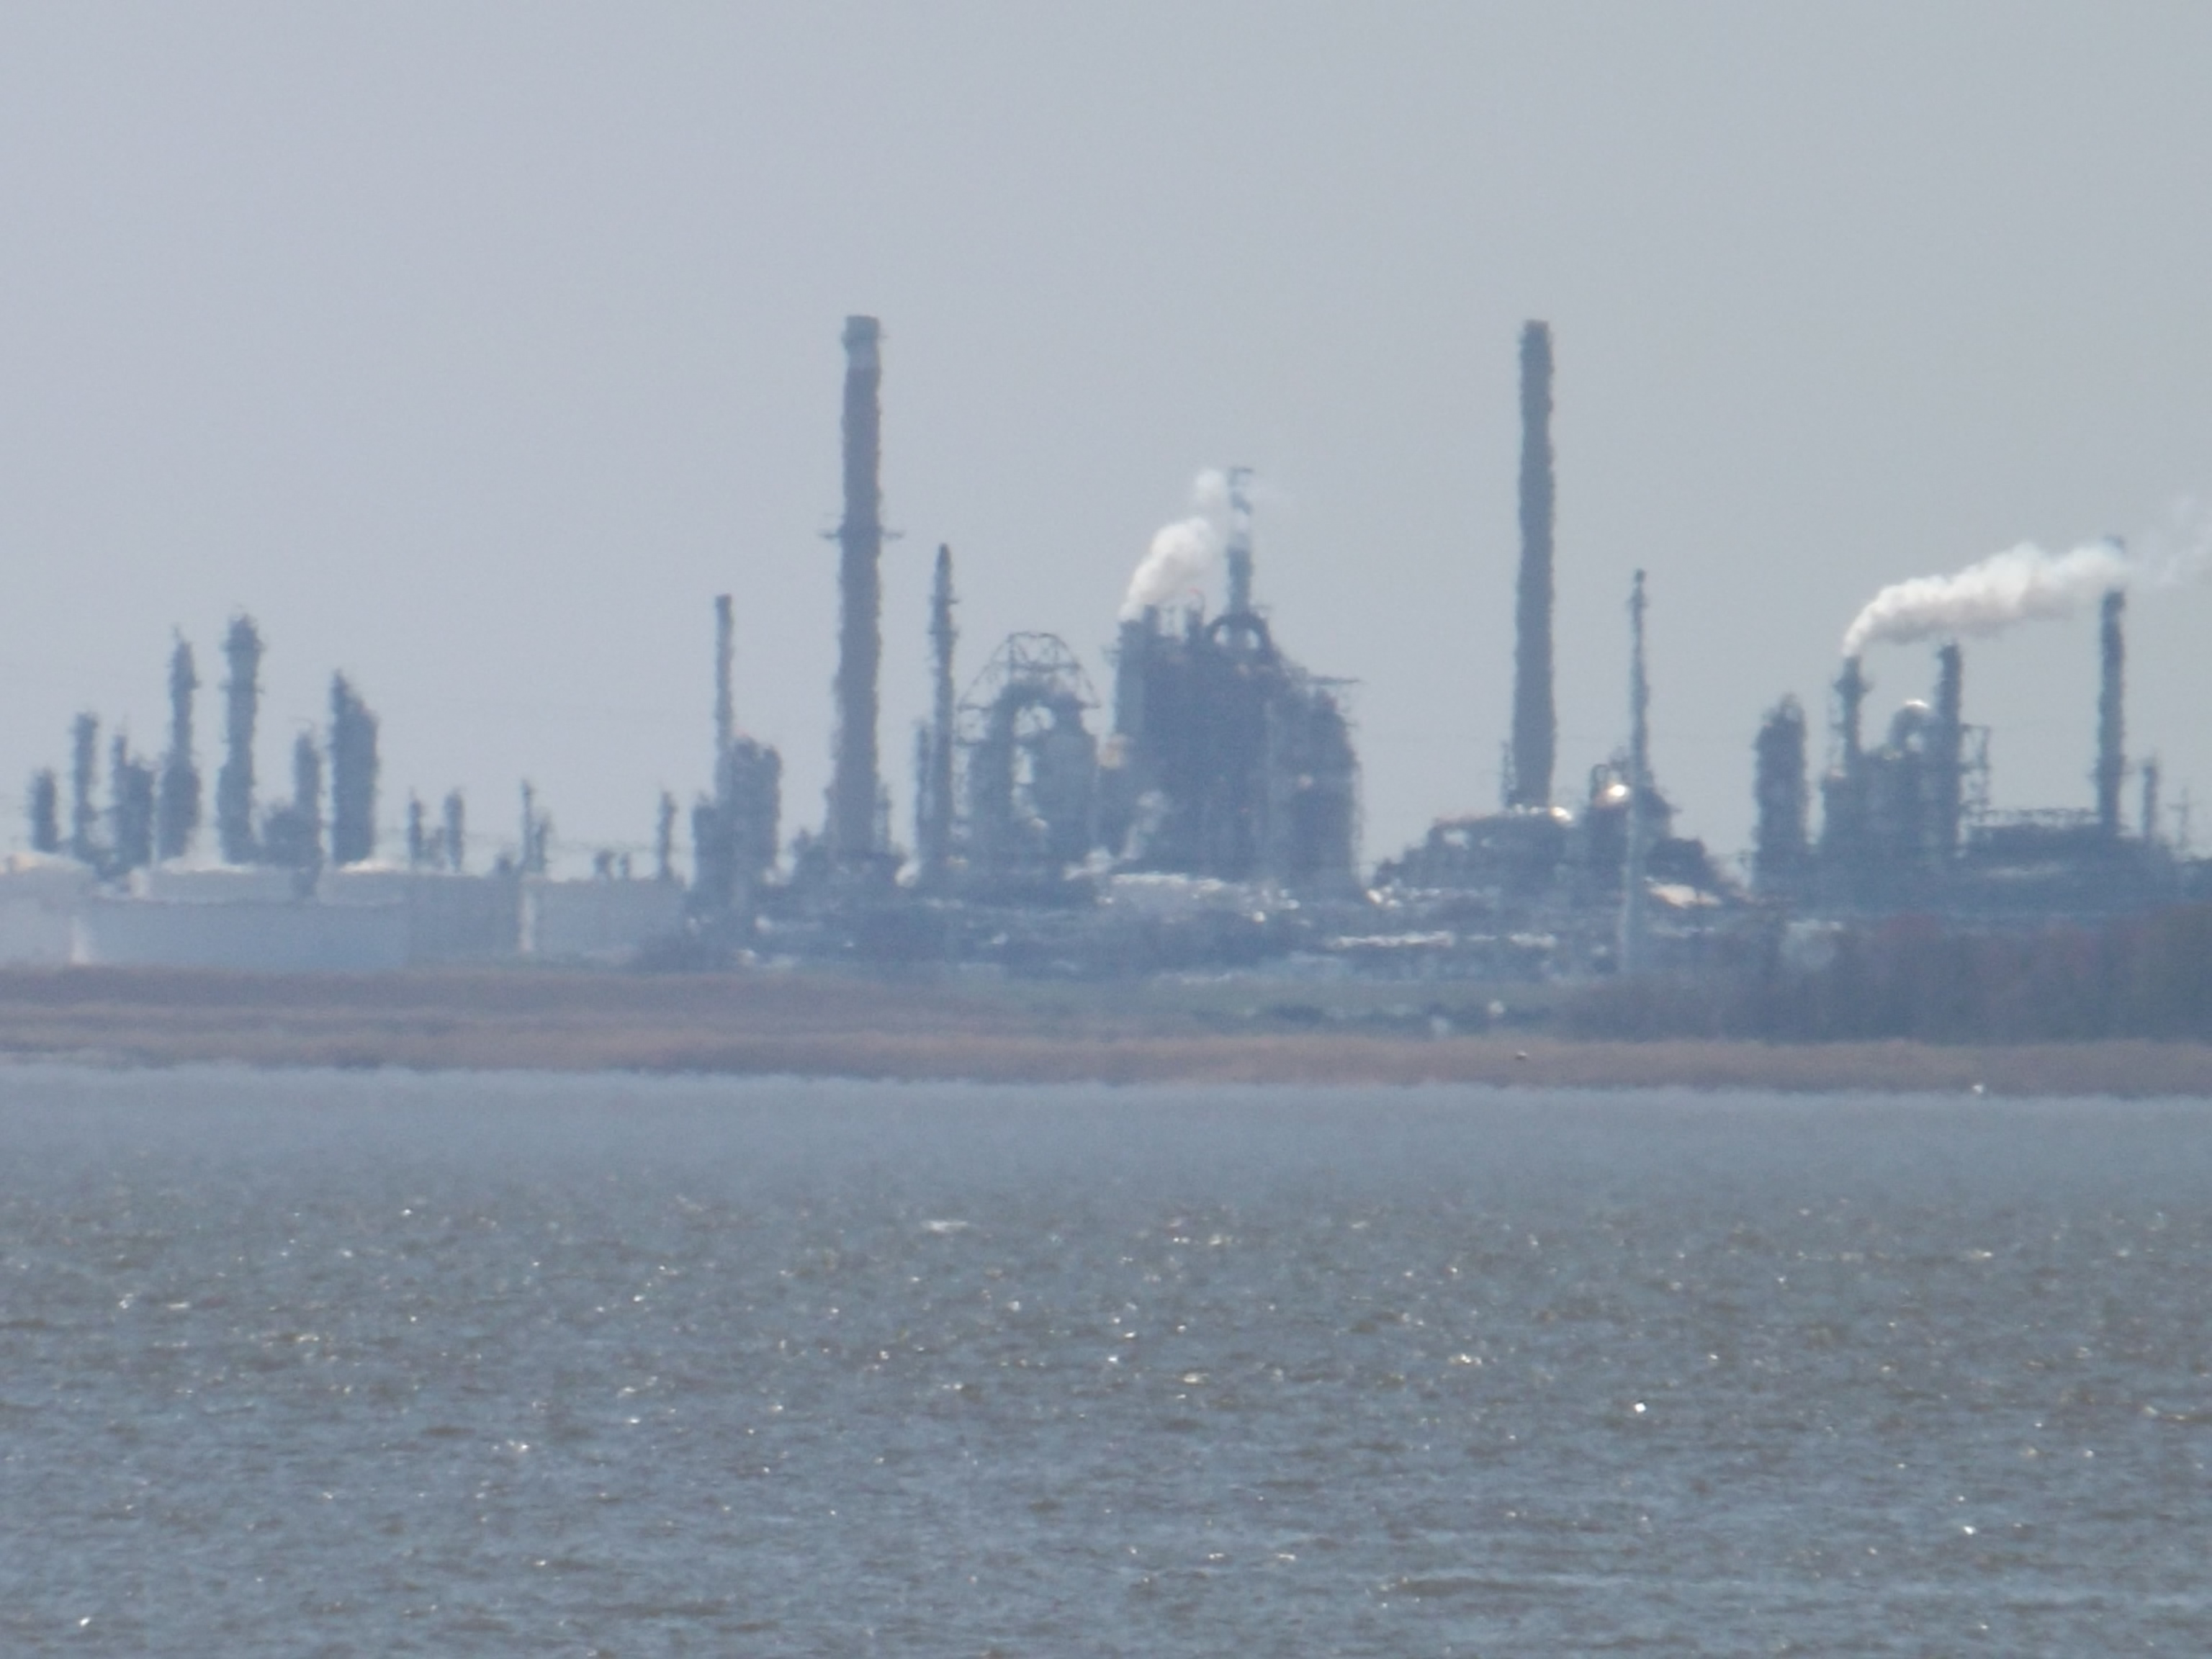 delaware city refinery, battery park, delaware river, delaware bay, fish kills, polluted water, clean water act